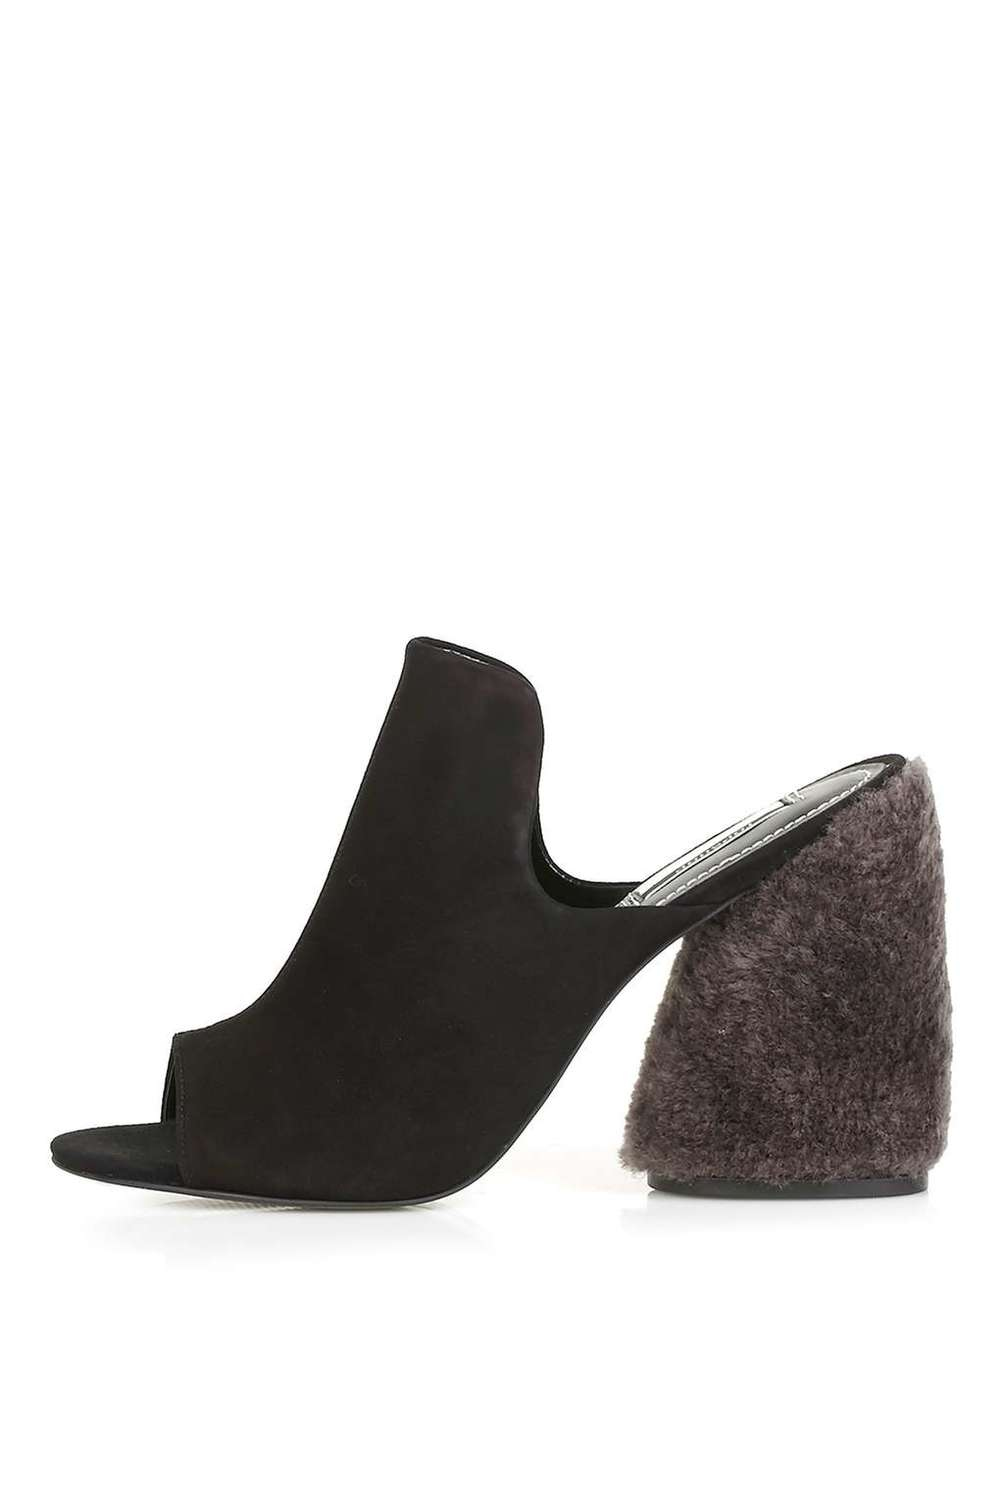 PERSIA Limited Edition High Shearling Mules. Available in multiple colors. Topshop. $160.